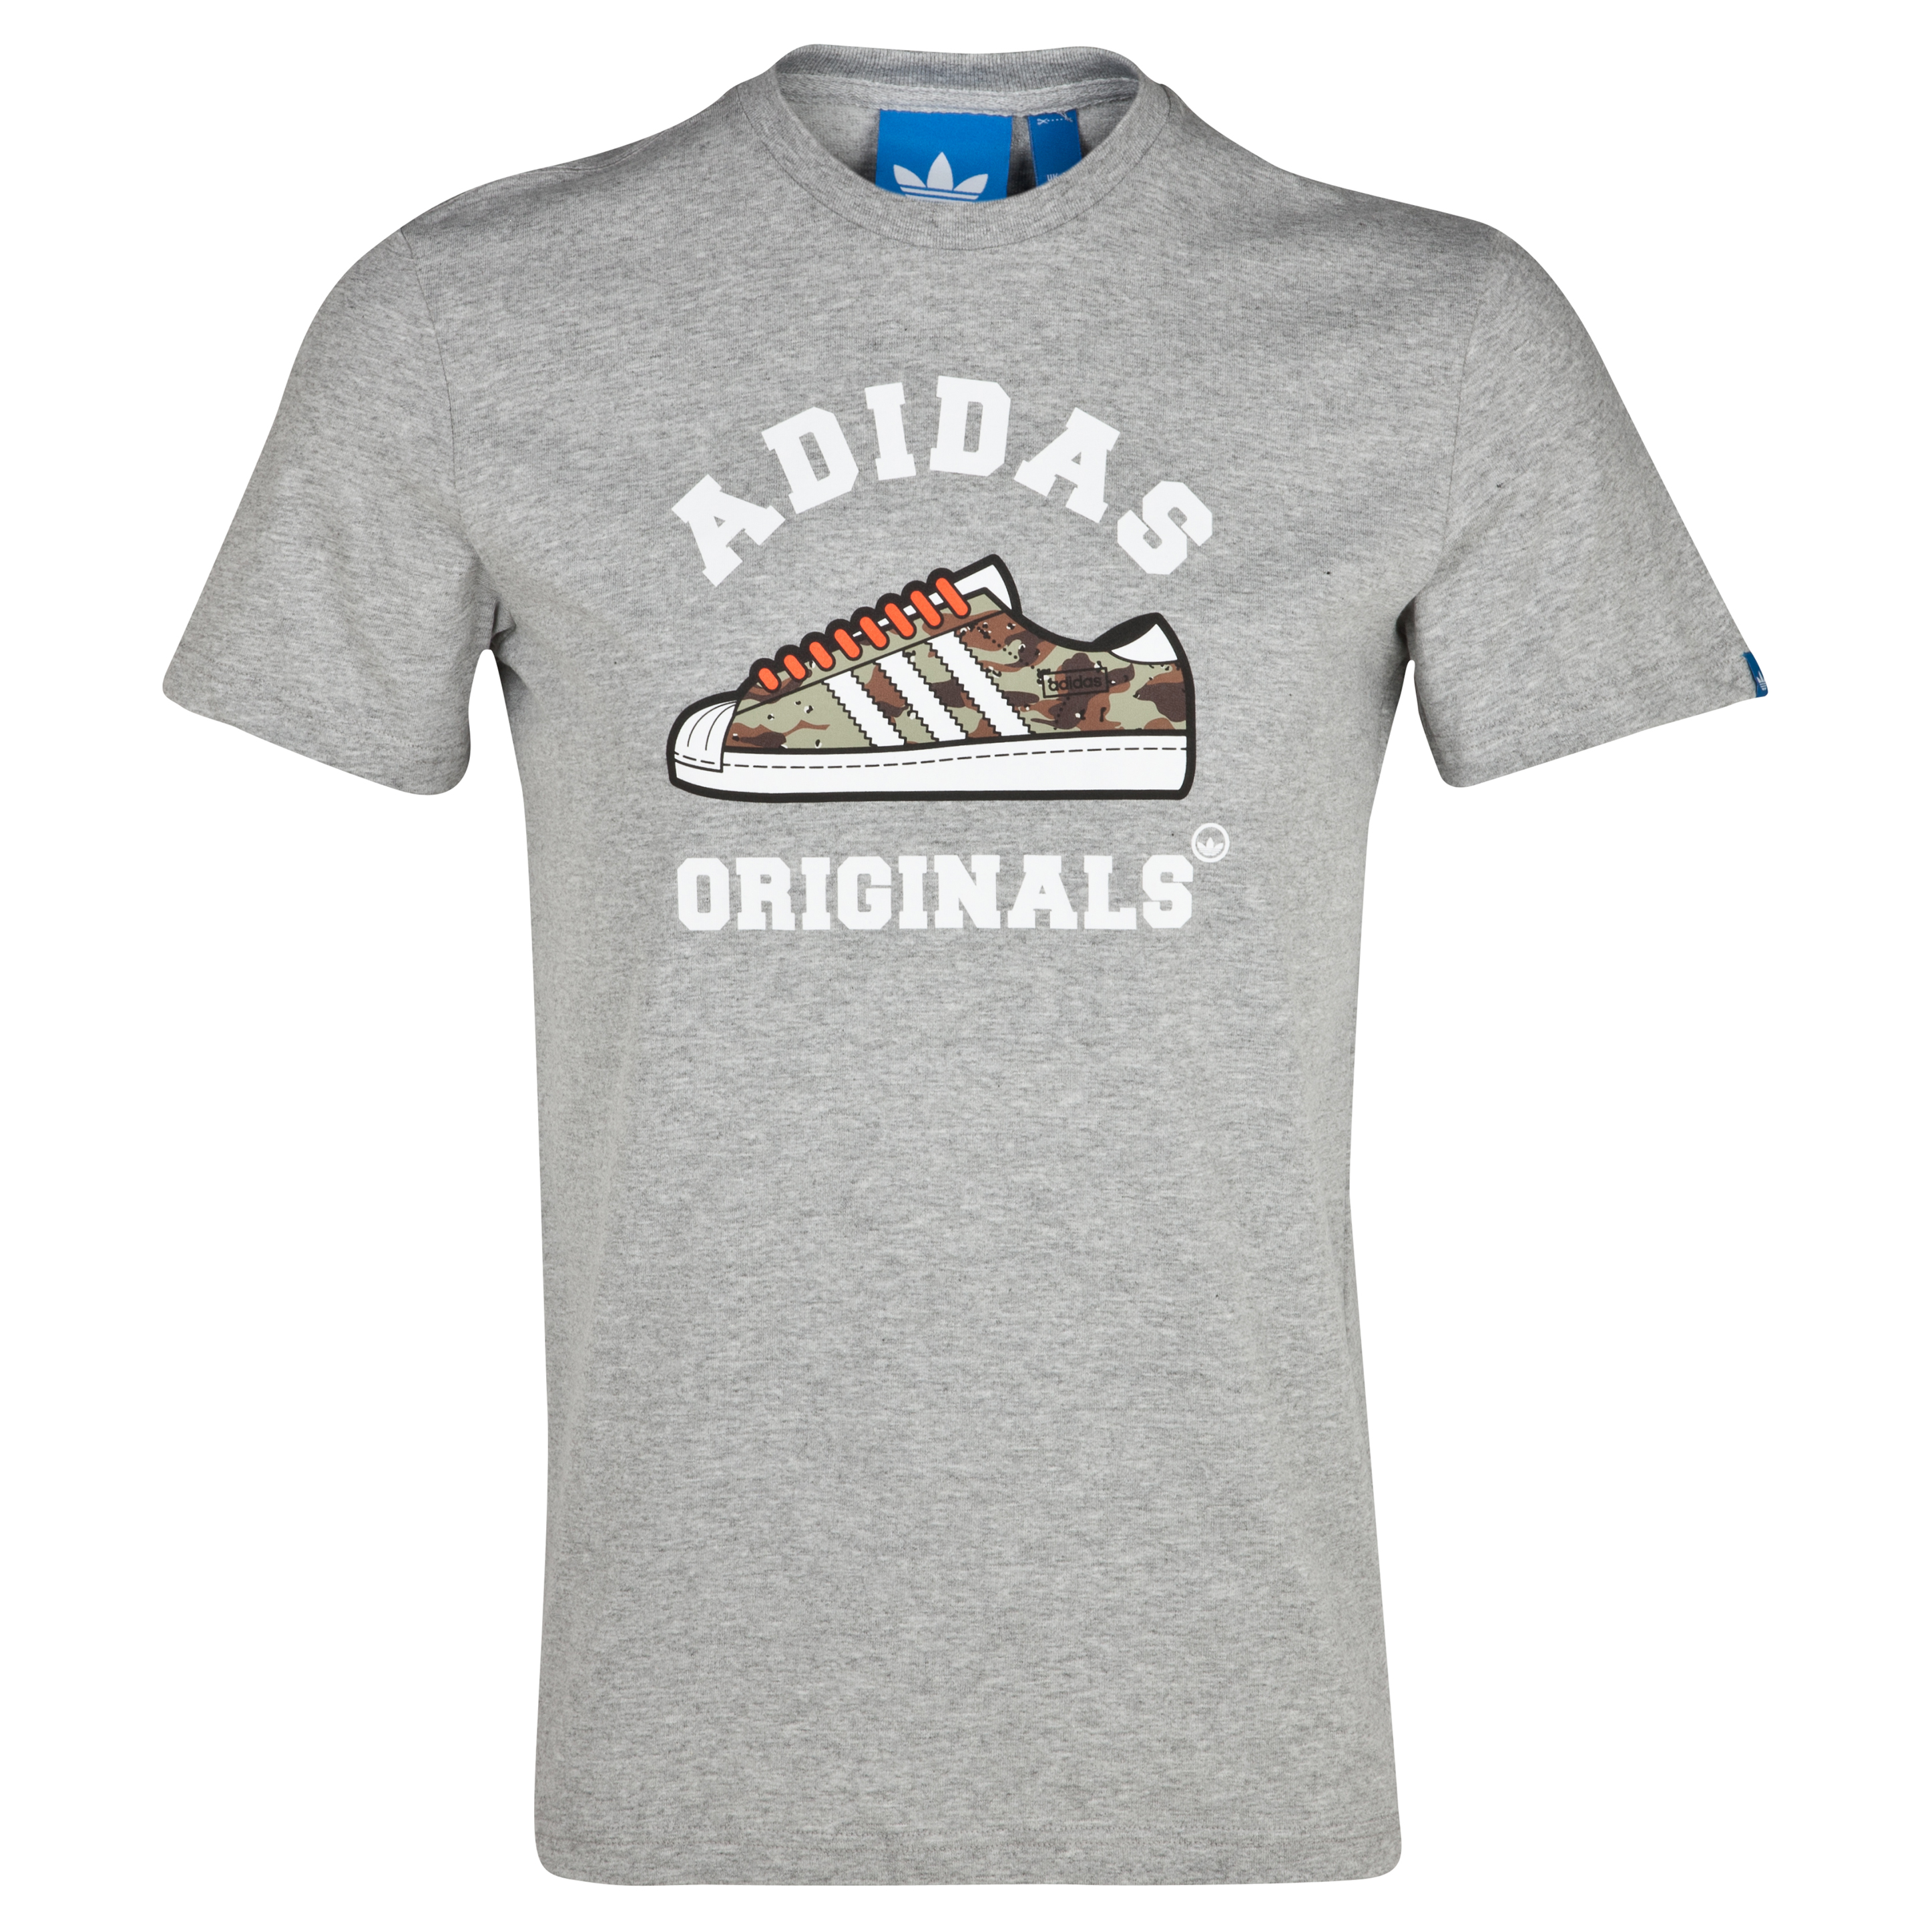 Originals Camo Footwear Tee - Medium Grey Heather